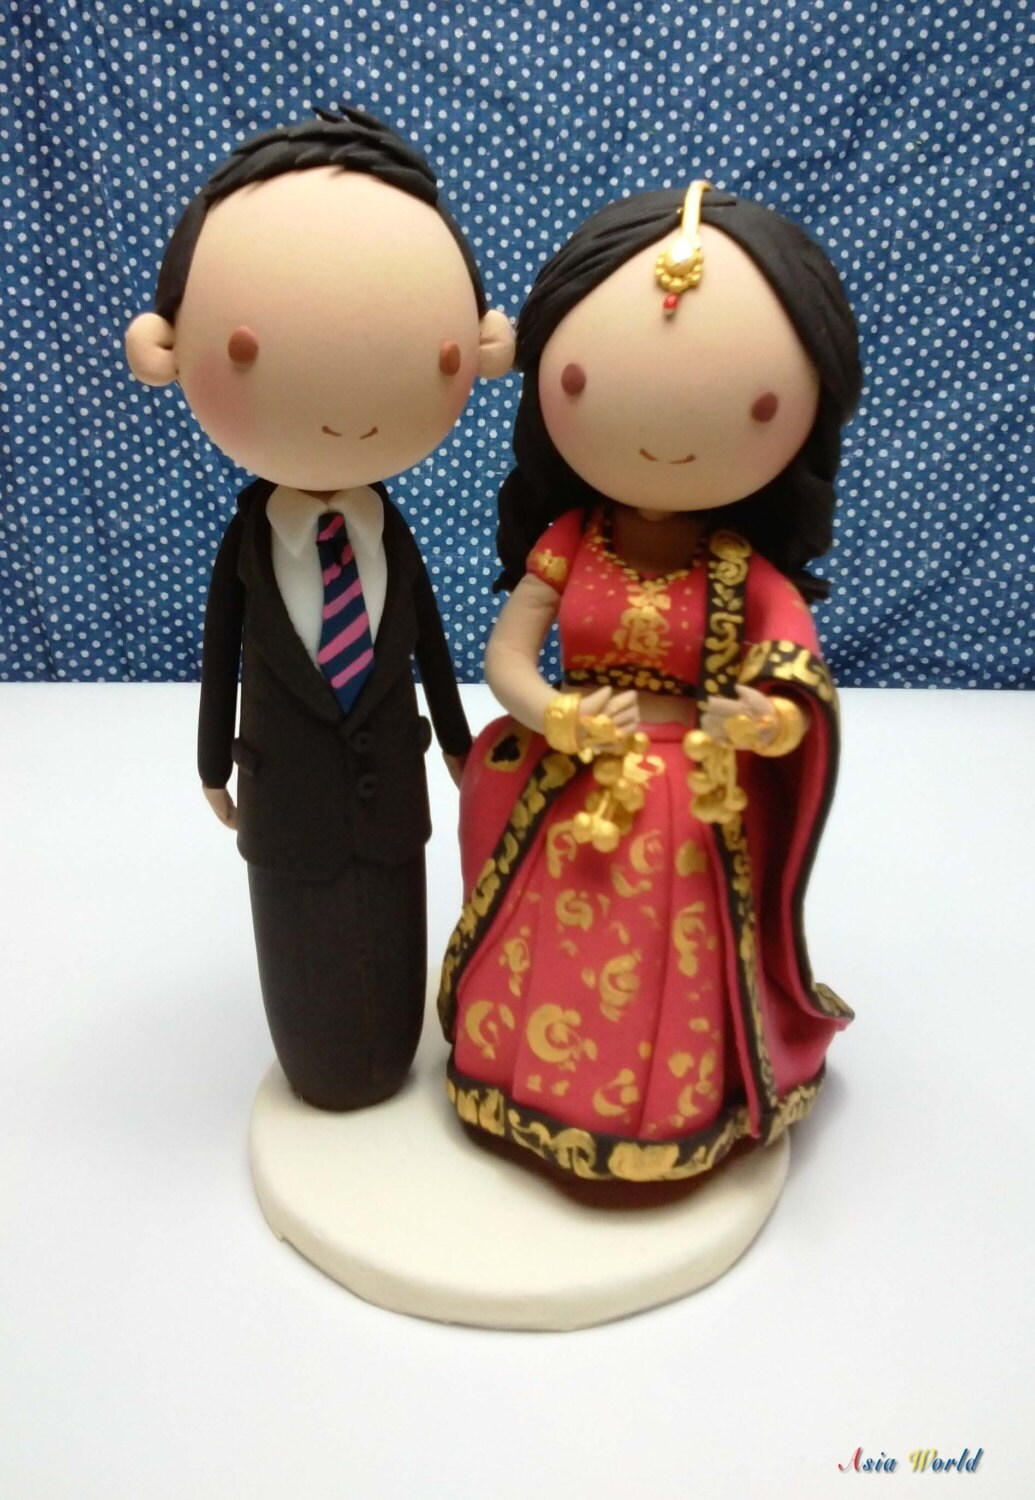 indian cake topper wedding ring cake topper Wedding cake topper bride in Indian traditional wedding costume clay doll engagement clay miniature clay figurine decoration ring holder